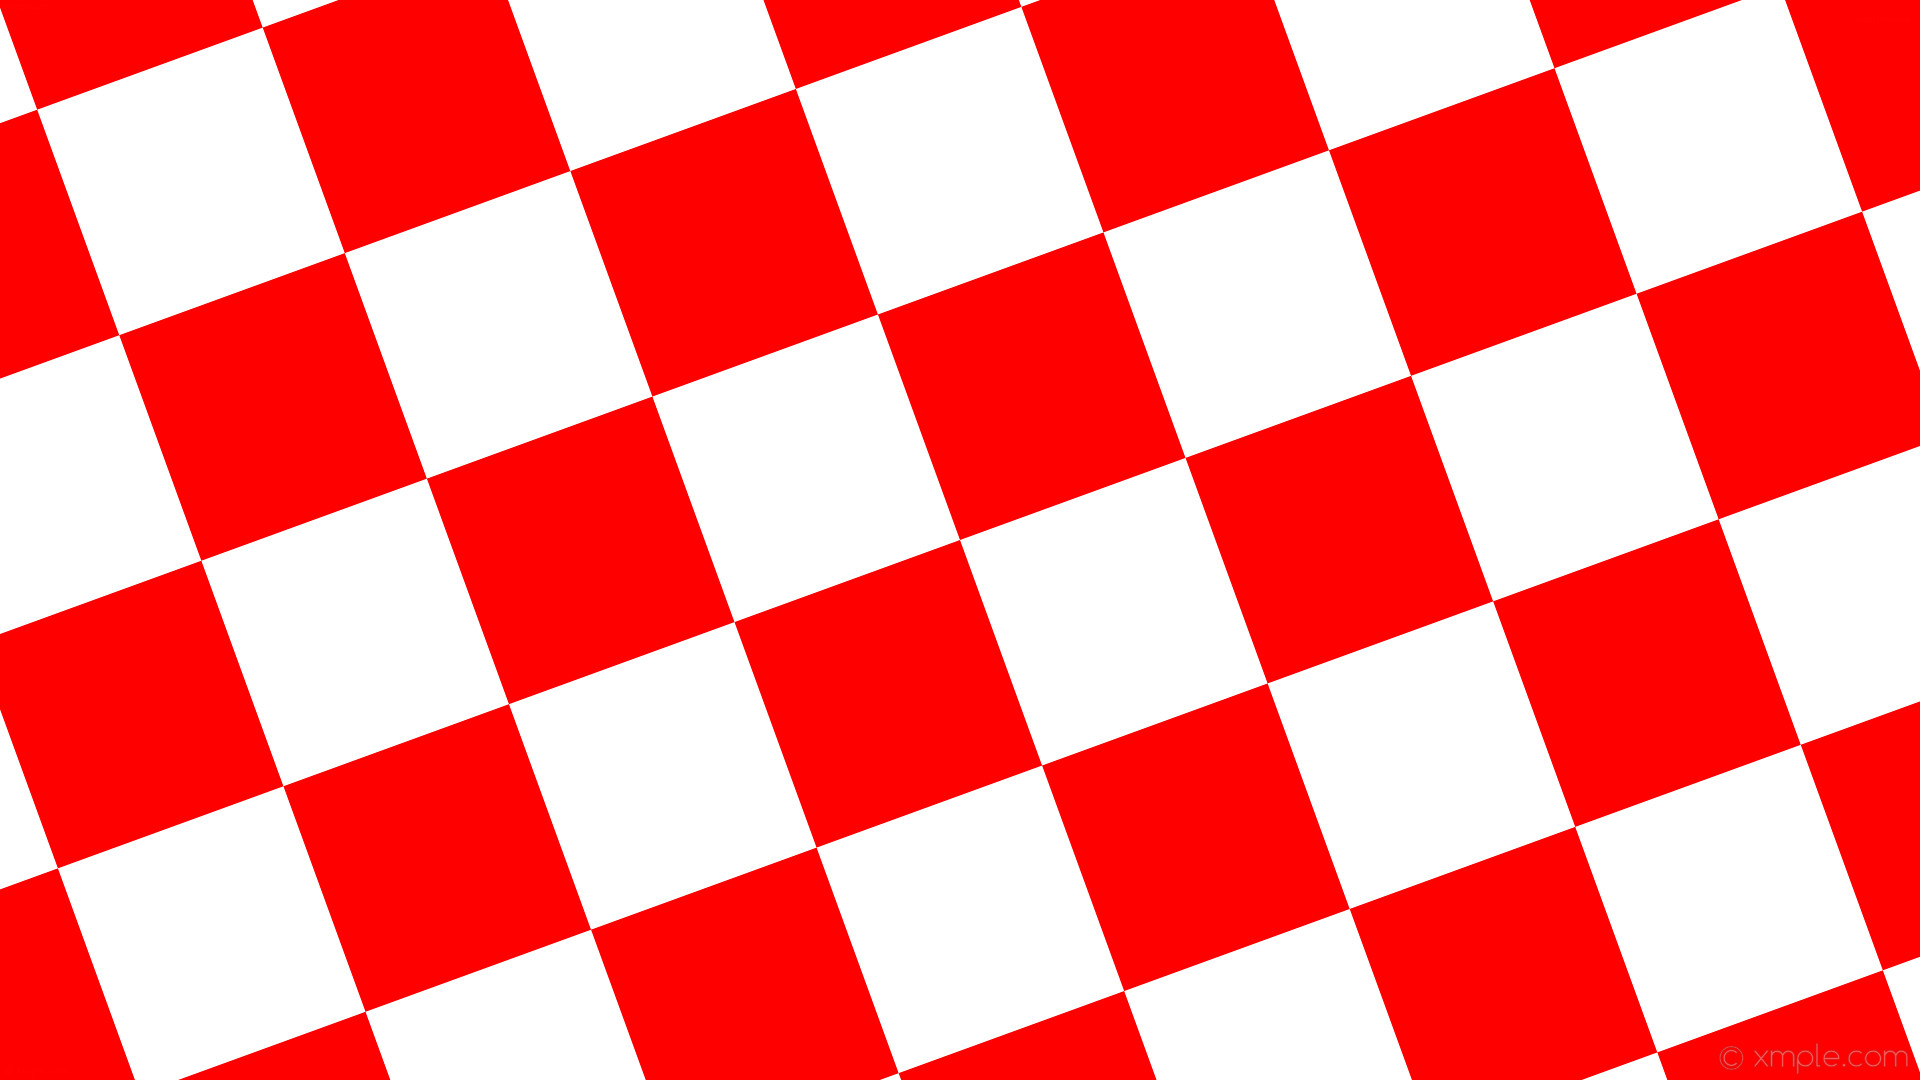 1920x1080 wallpaper checkered white red squares #ffffff #ff0000 diagonal 20° 240px